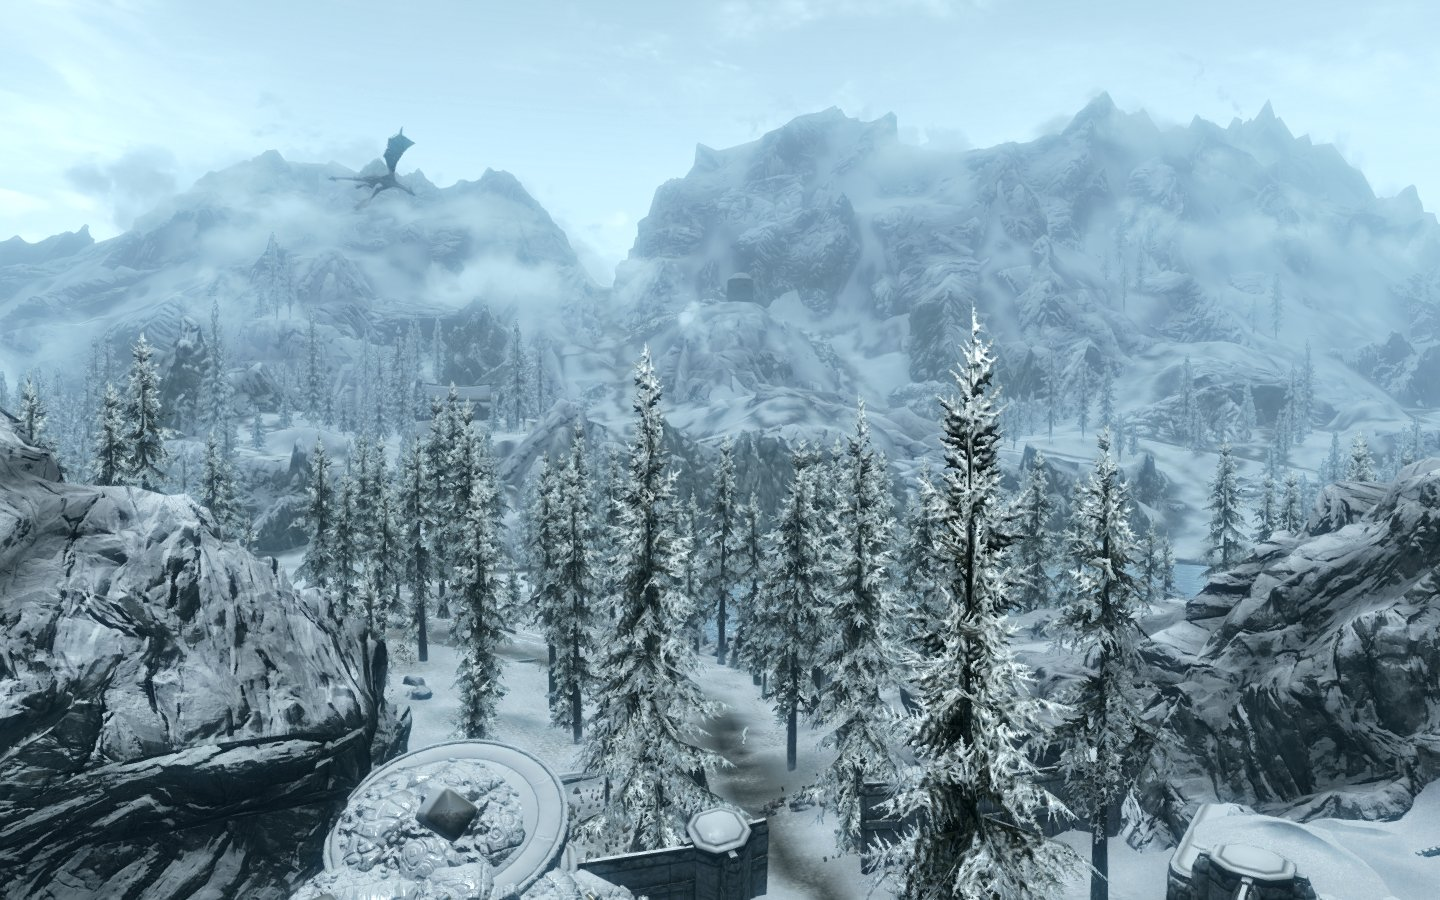 Skyrim Mountains Images - Reverse Search